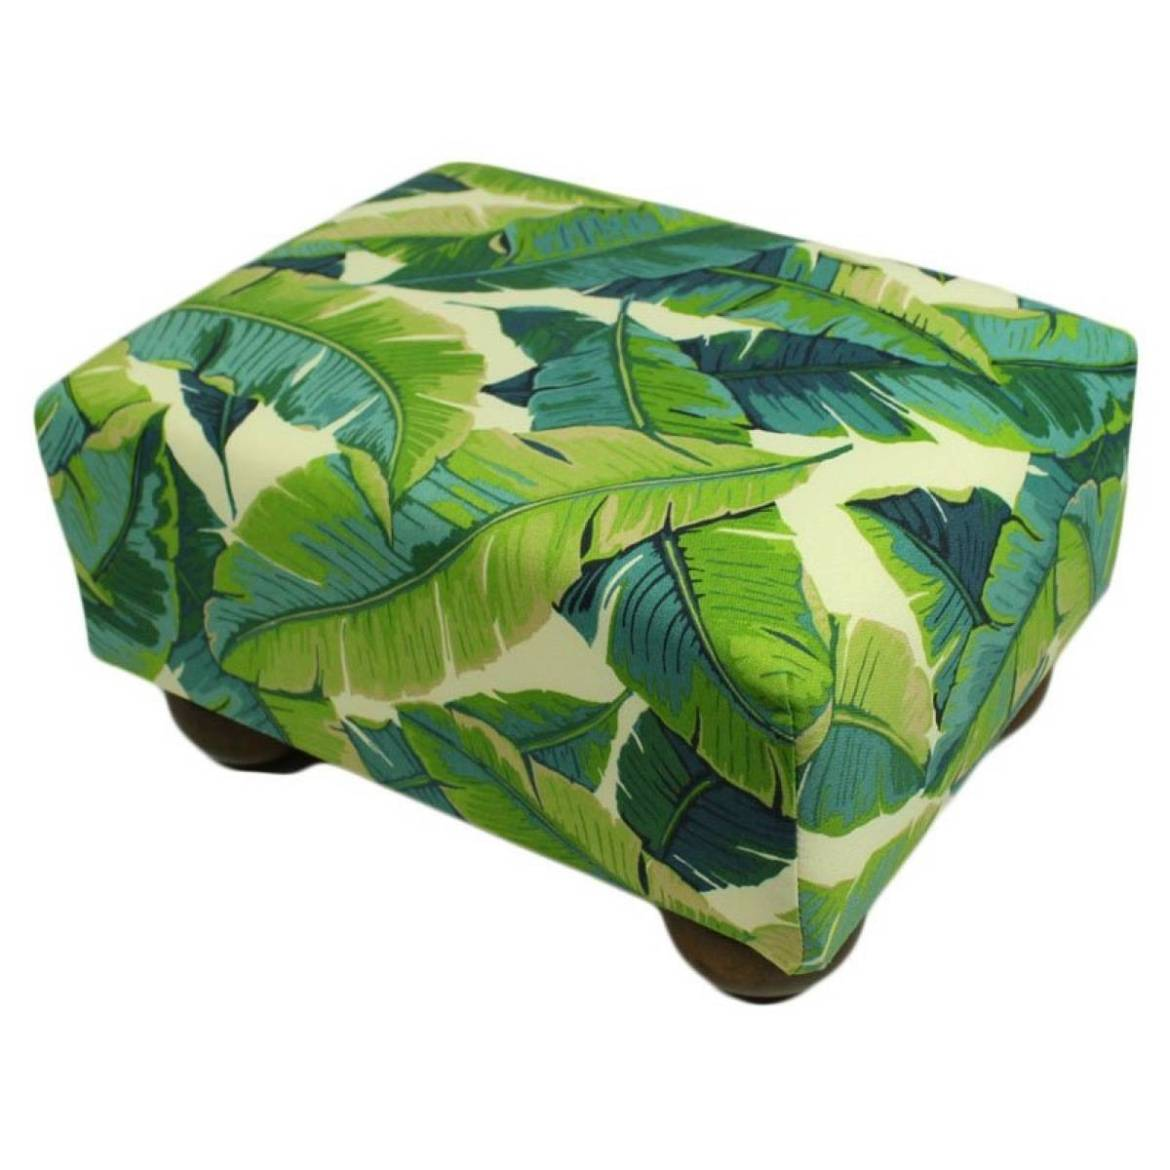 Leaves ottoman from Hayneedle